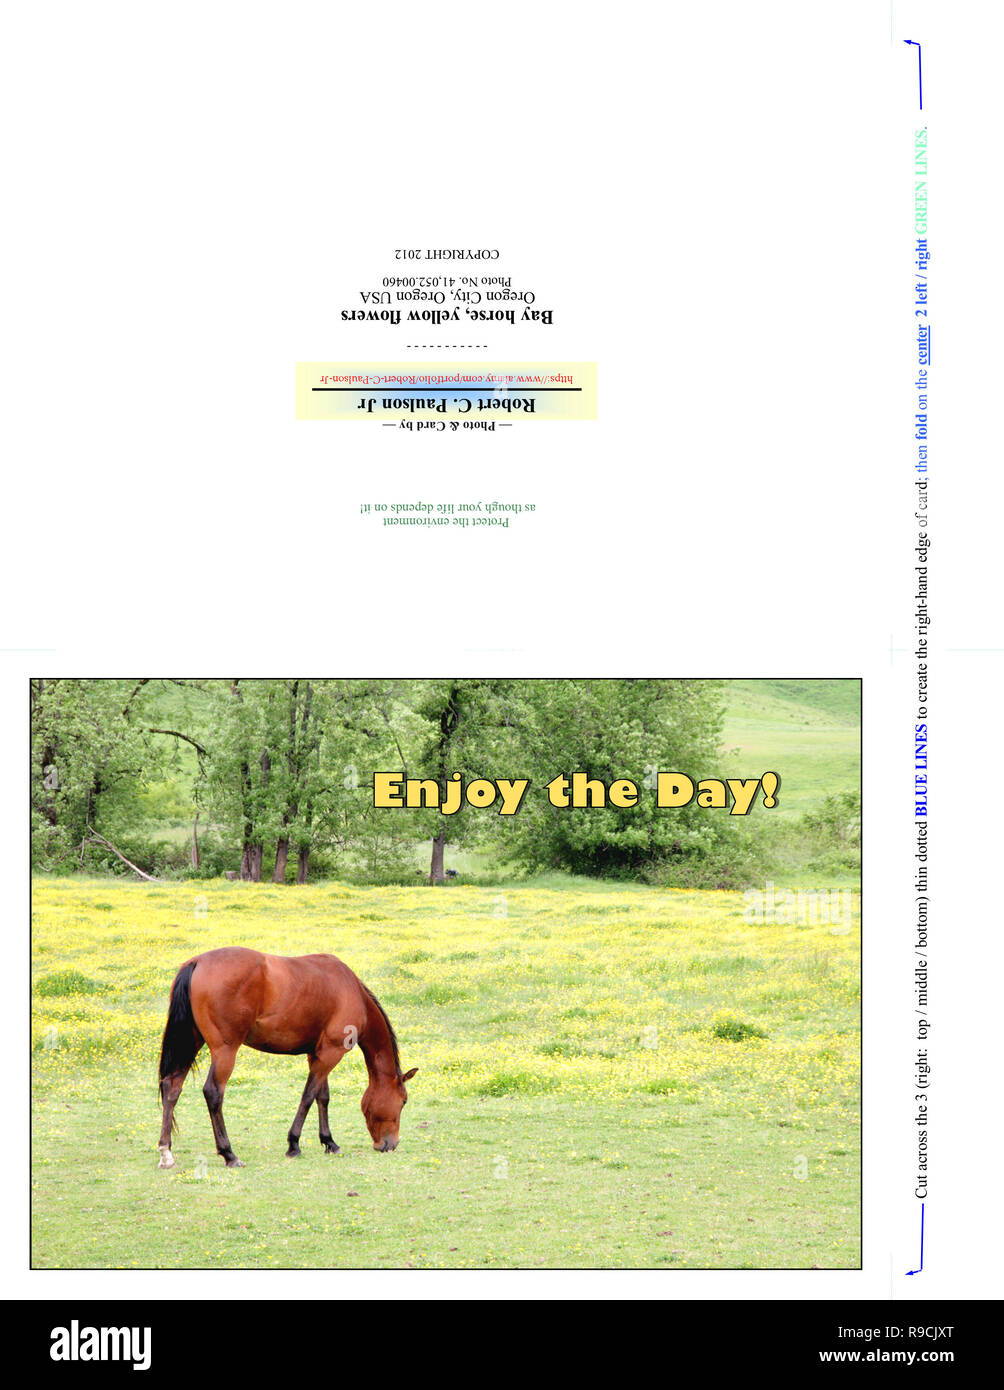 41,052.00460 Greeting Card, Enjoy the Day (print cut fold for 7x5 photo), brown horse, yellow flowers green pasture, trees bkgr, slight hill & valley - Stock Image